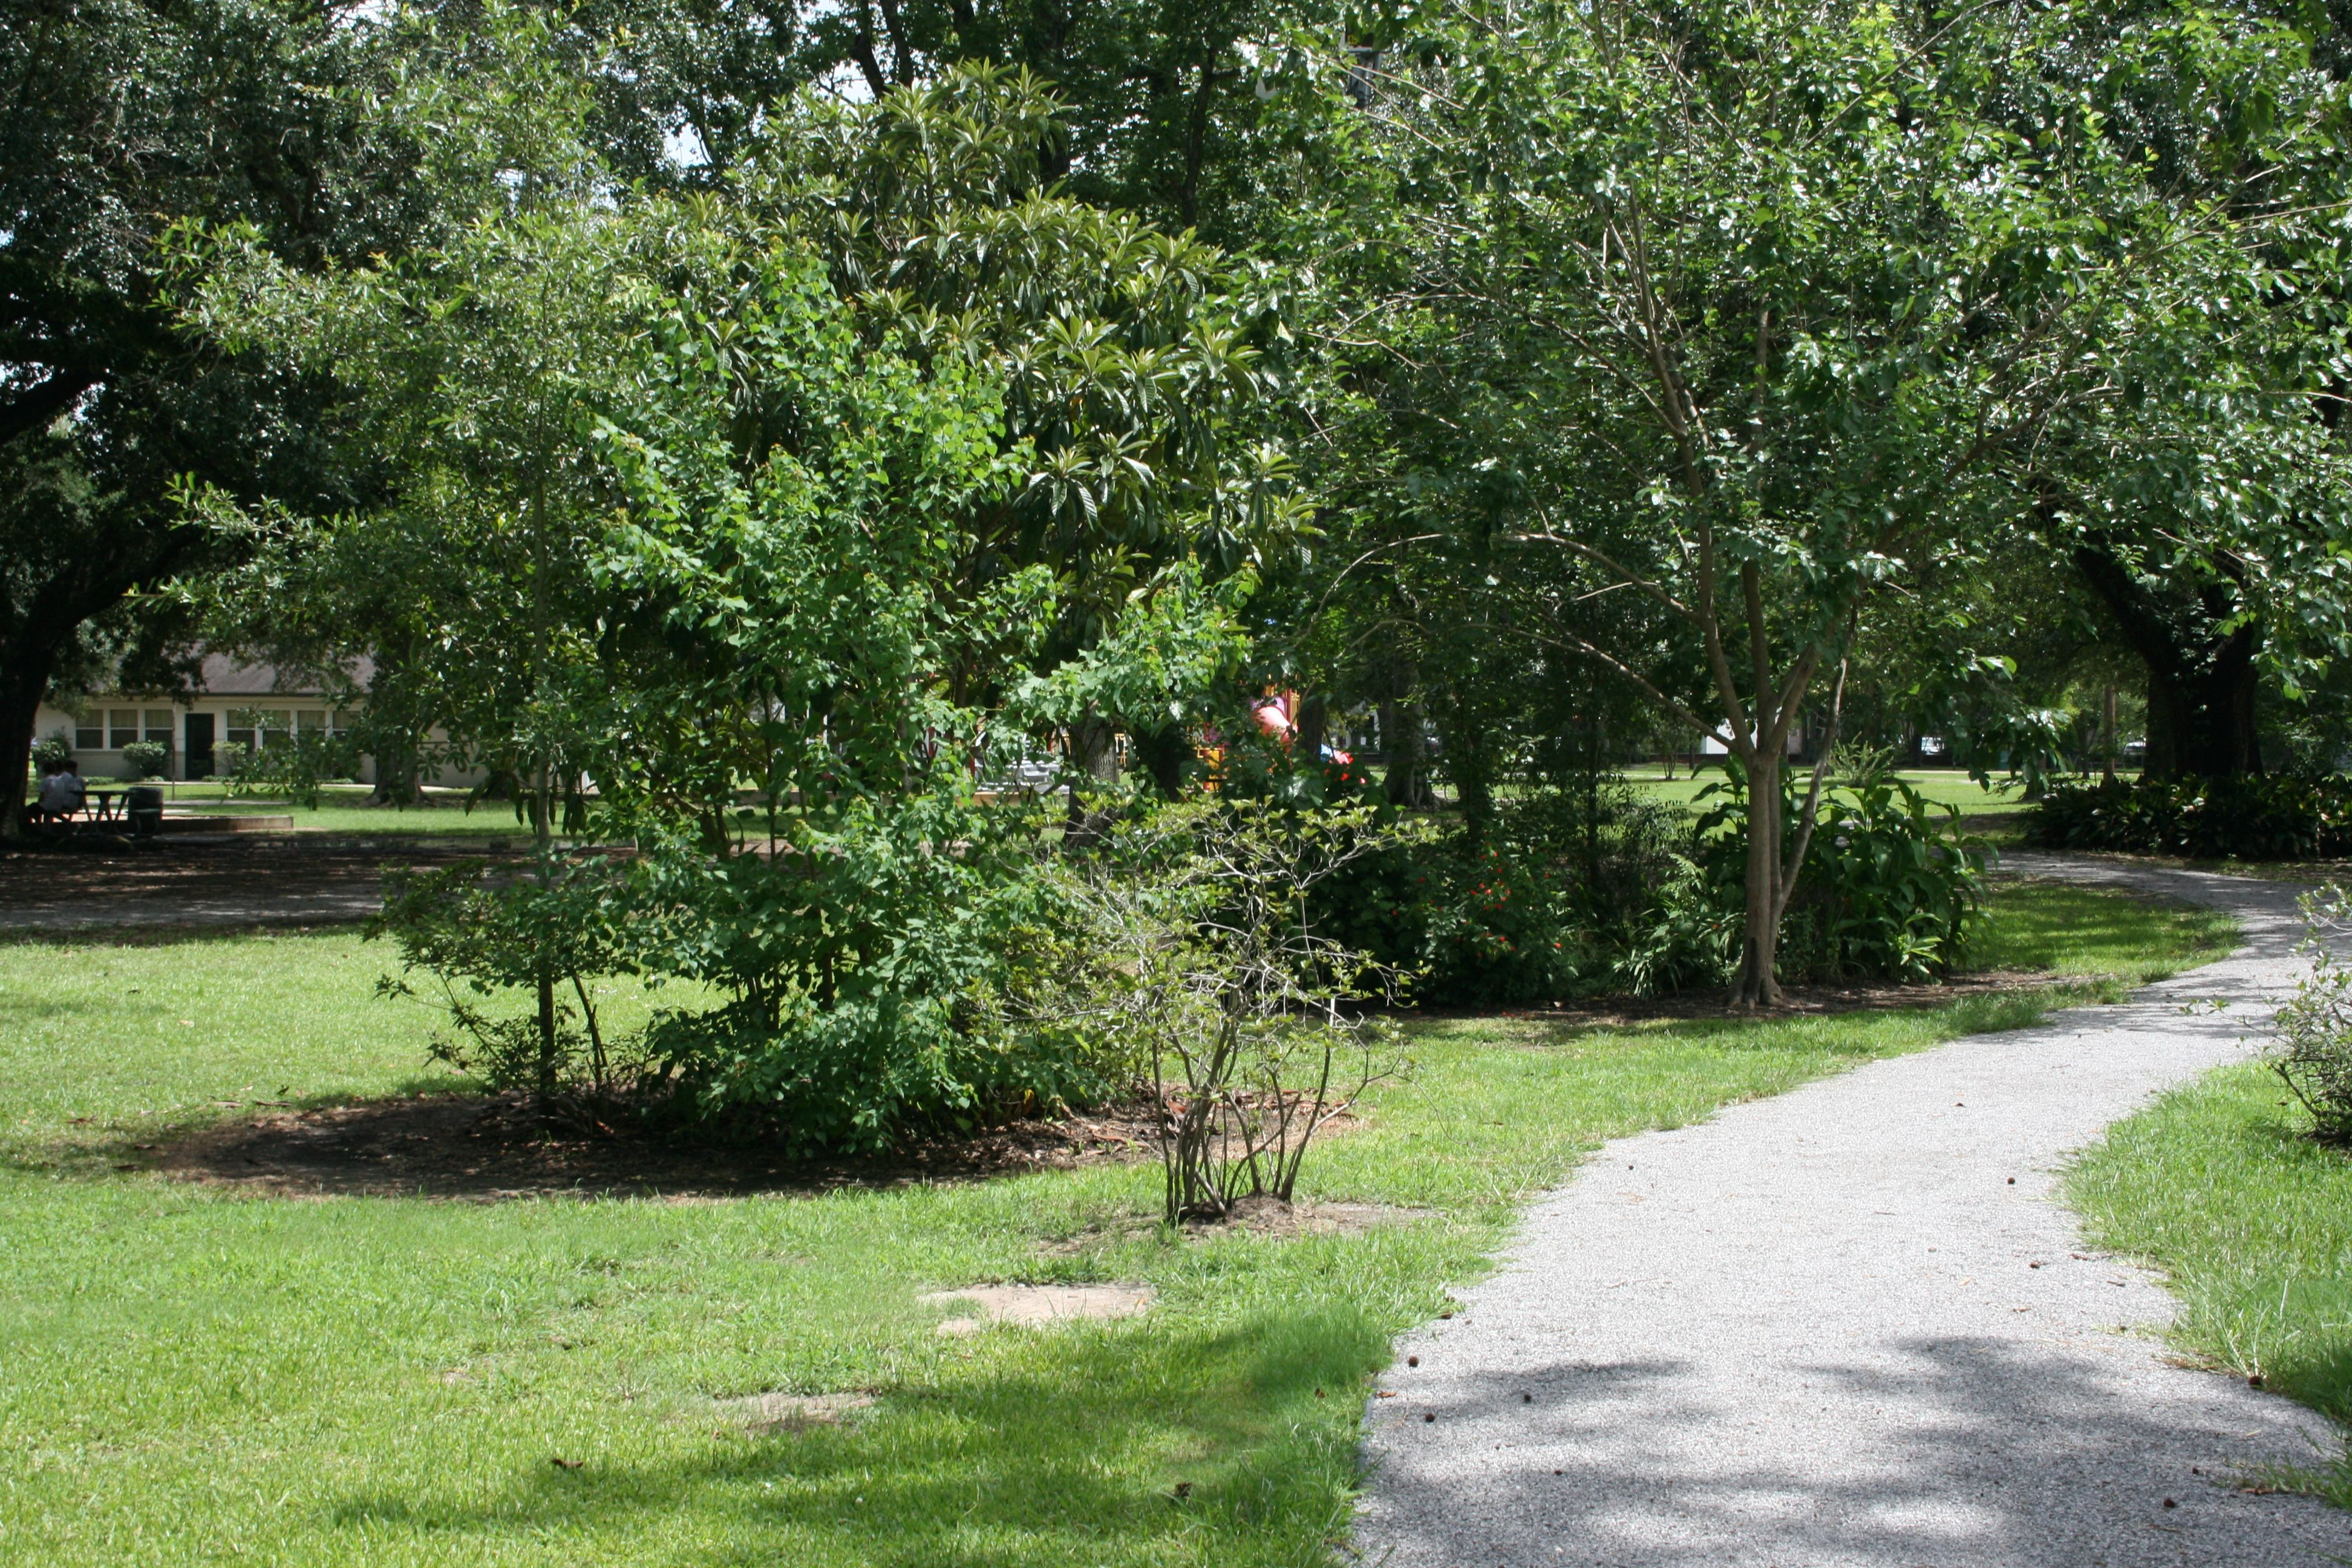 Drew Park 416 S Ryan St Lake Charles La Play Gyms Swings A Walking Trail Picnic Tables And Oak Trees Summer Day Camp Parks And Recreation Lake Charles La